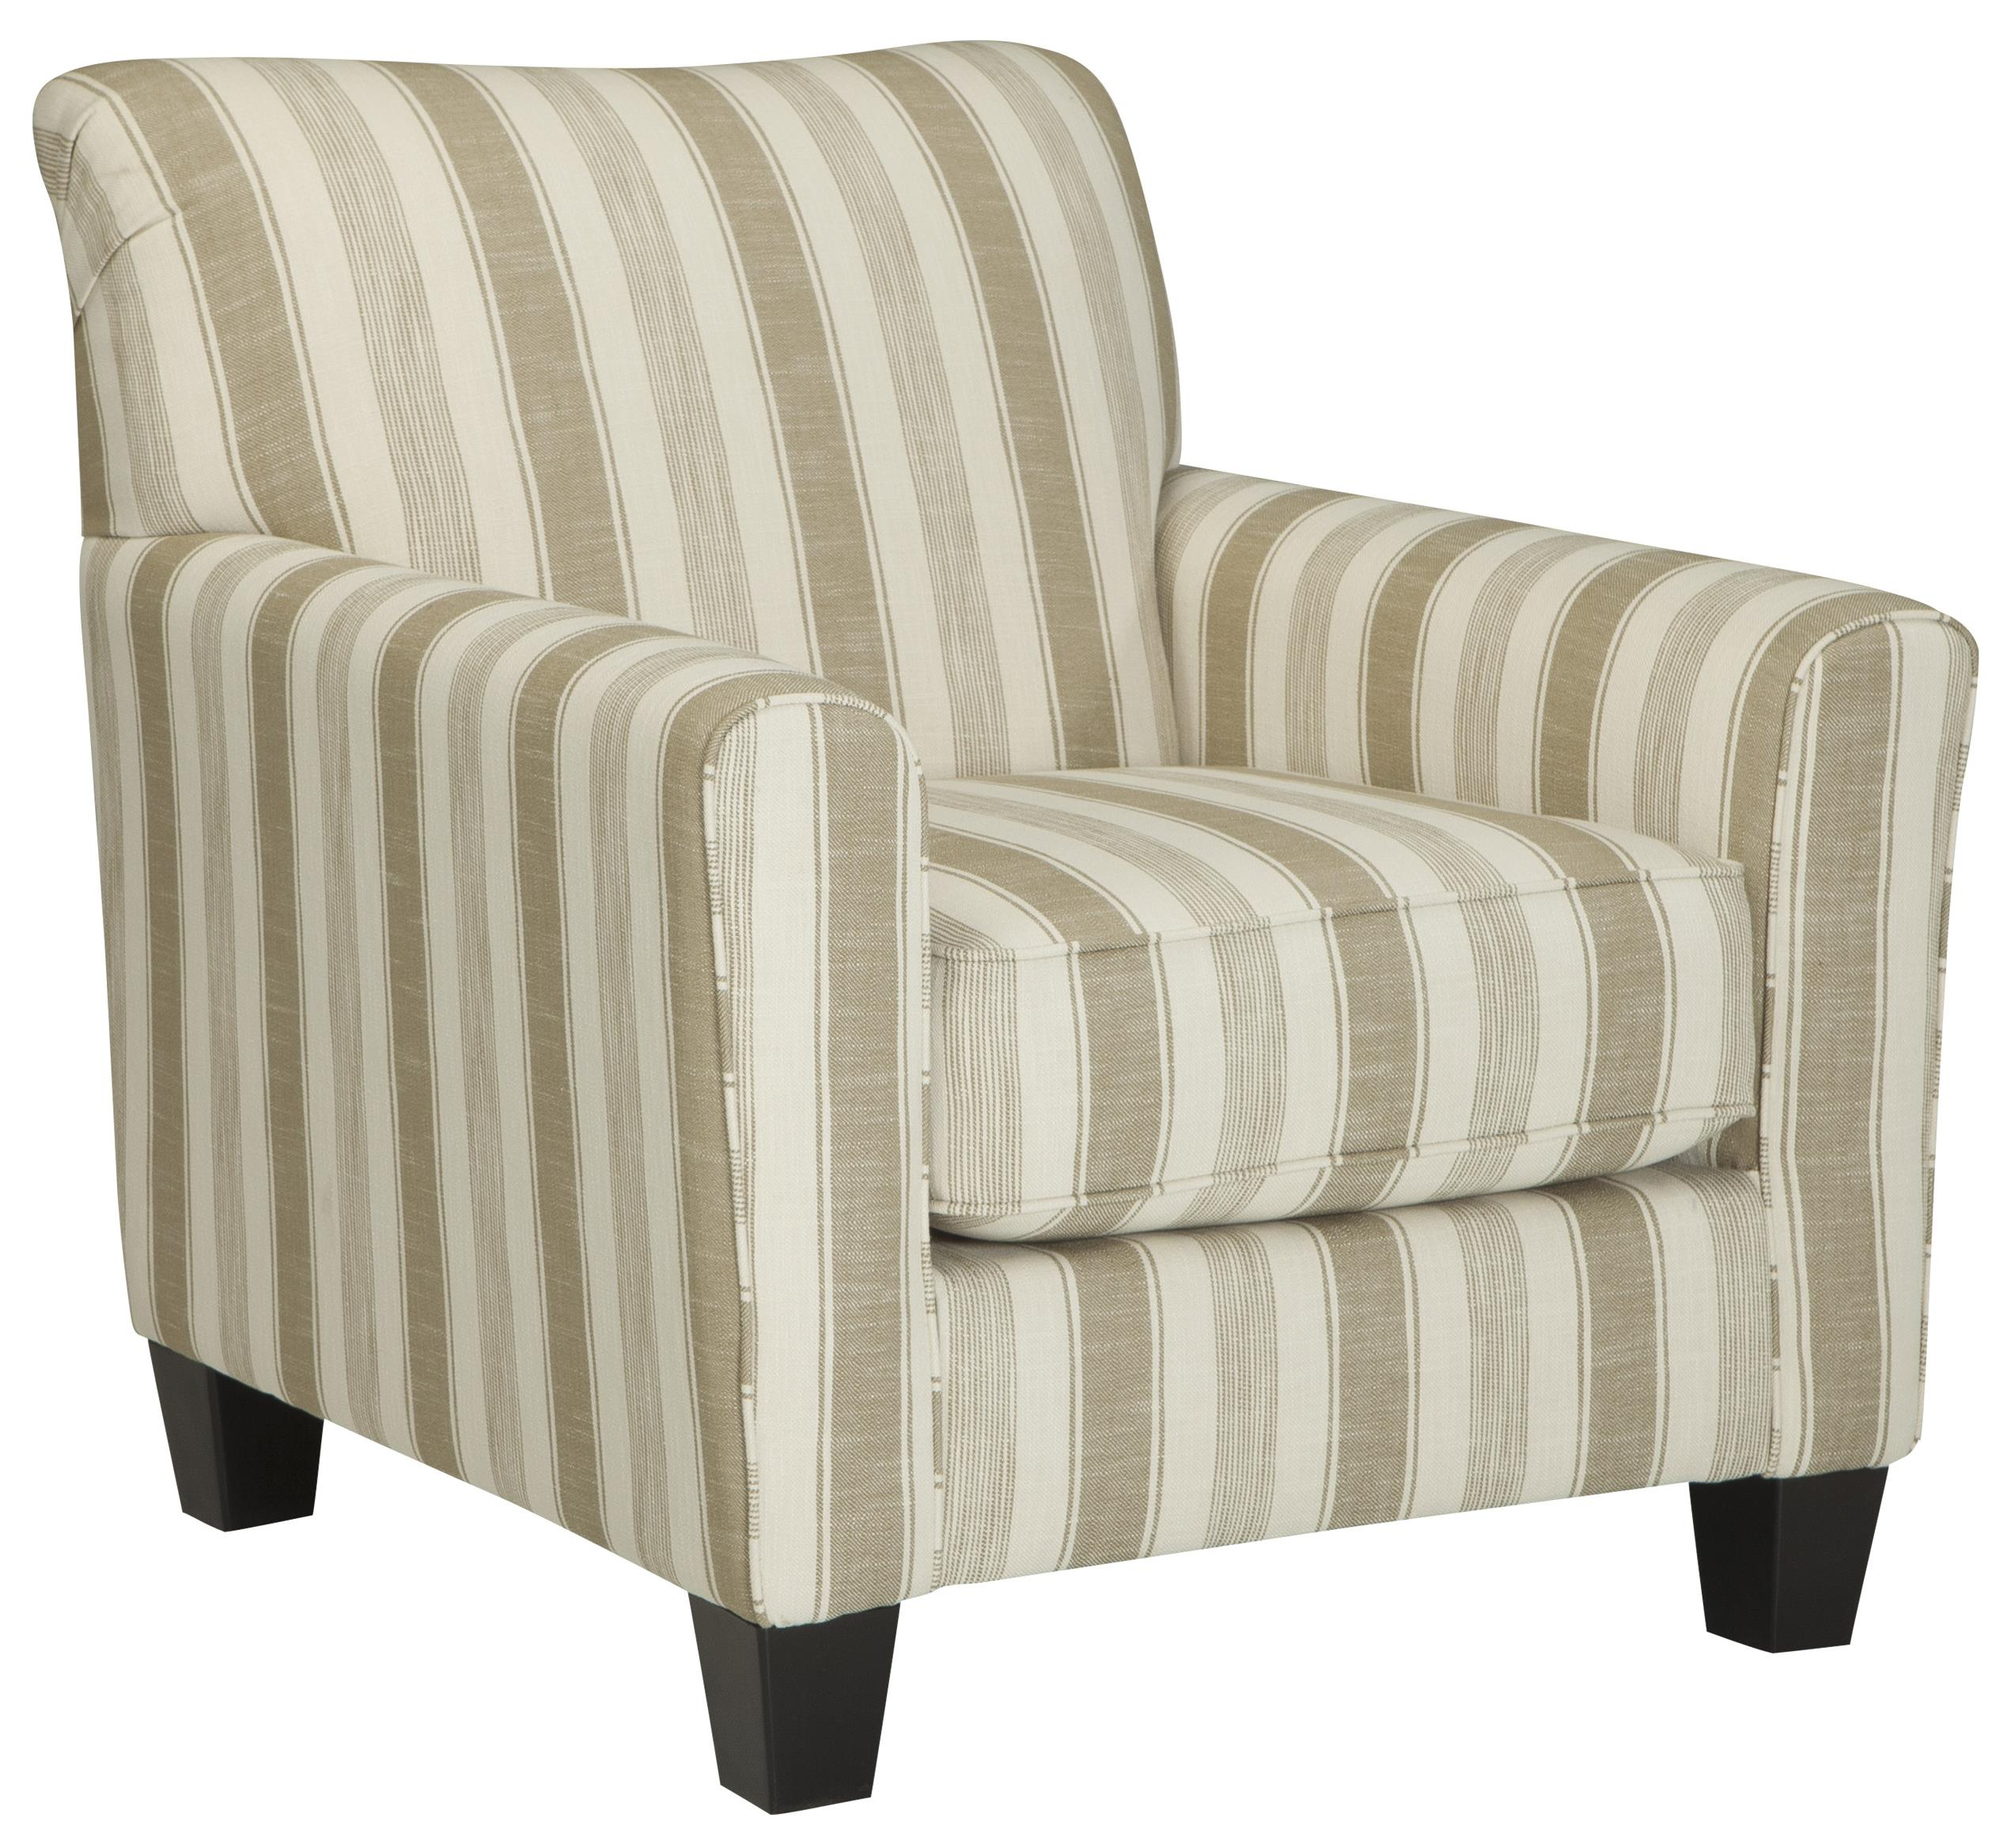 fabrics for chairs striped dining chair seat height benchcraft laryn accent with neutral stripe fabric